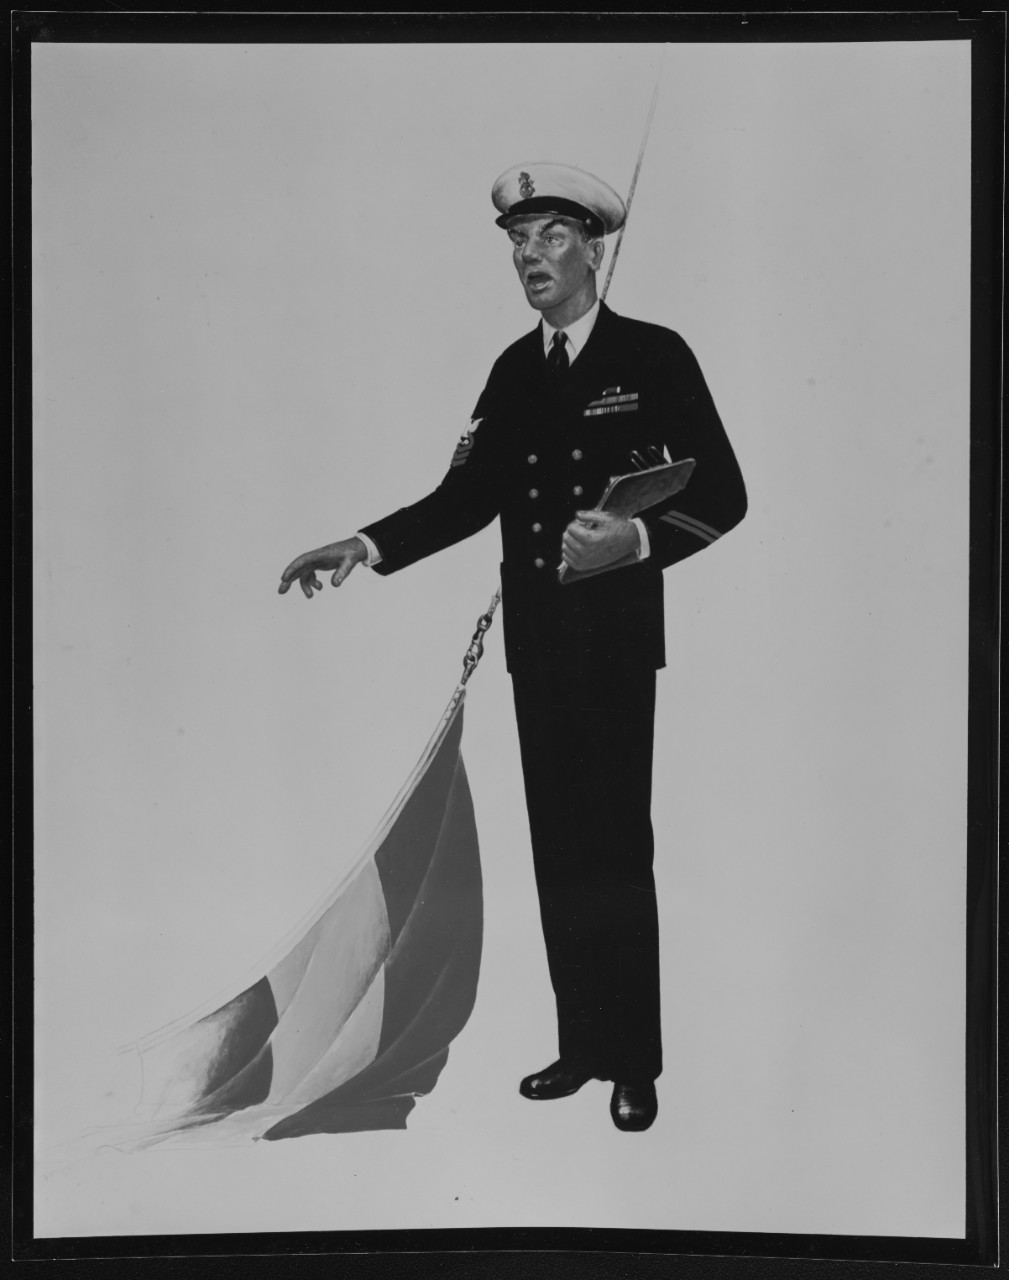 Chief Petty Officer's Uniform, 1920-1945